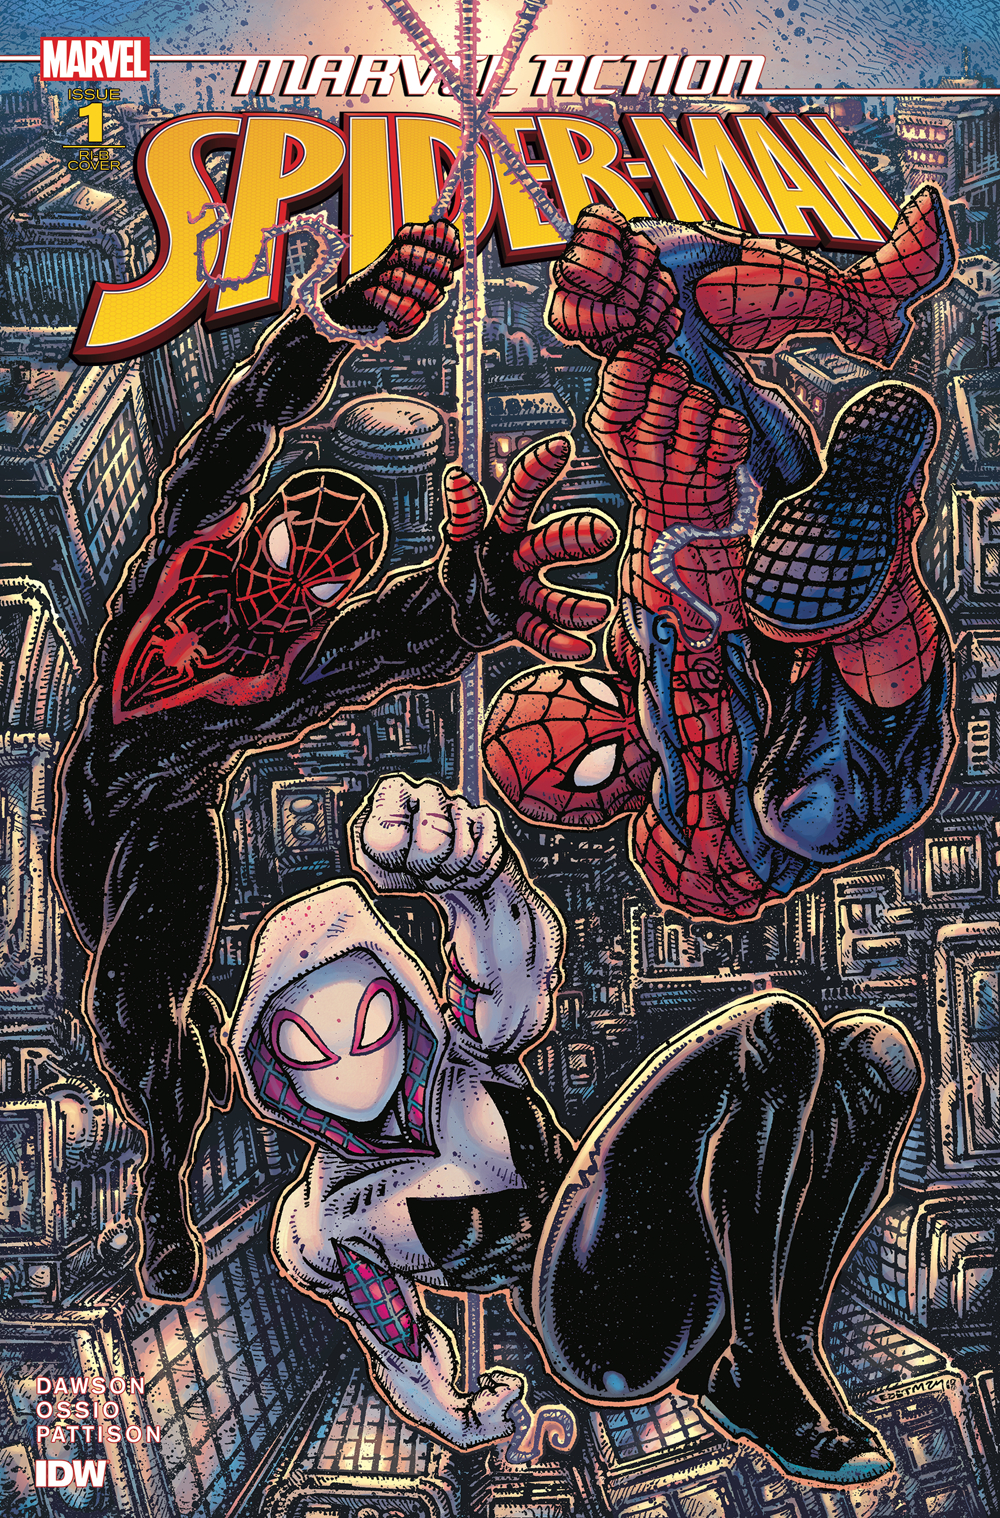 SPIDER-MAN (IDW) #1 25 COPY INCV